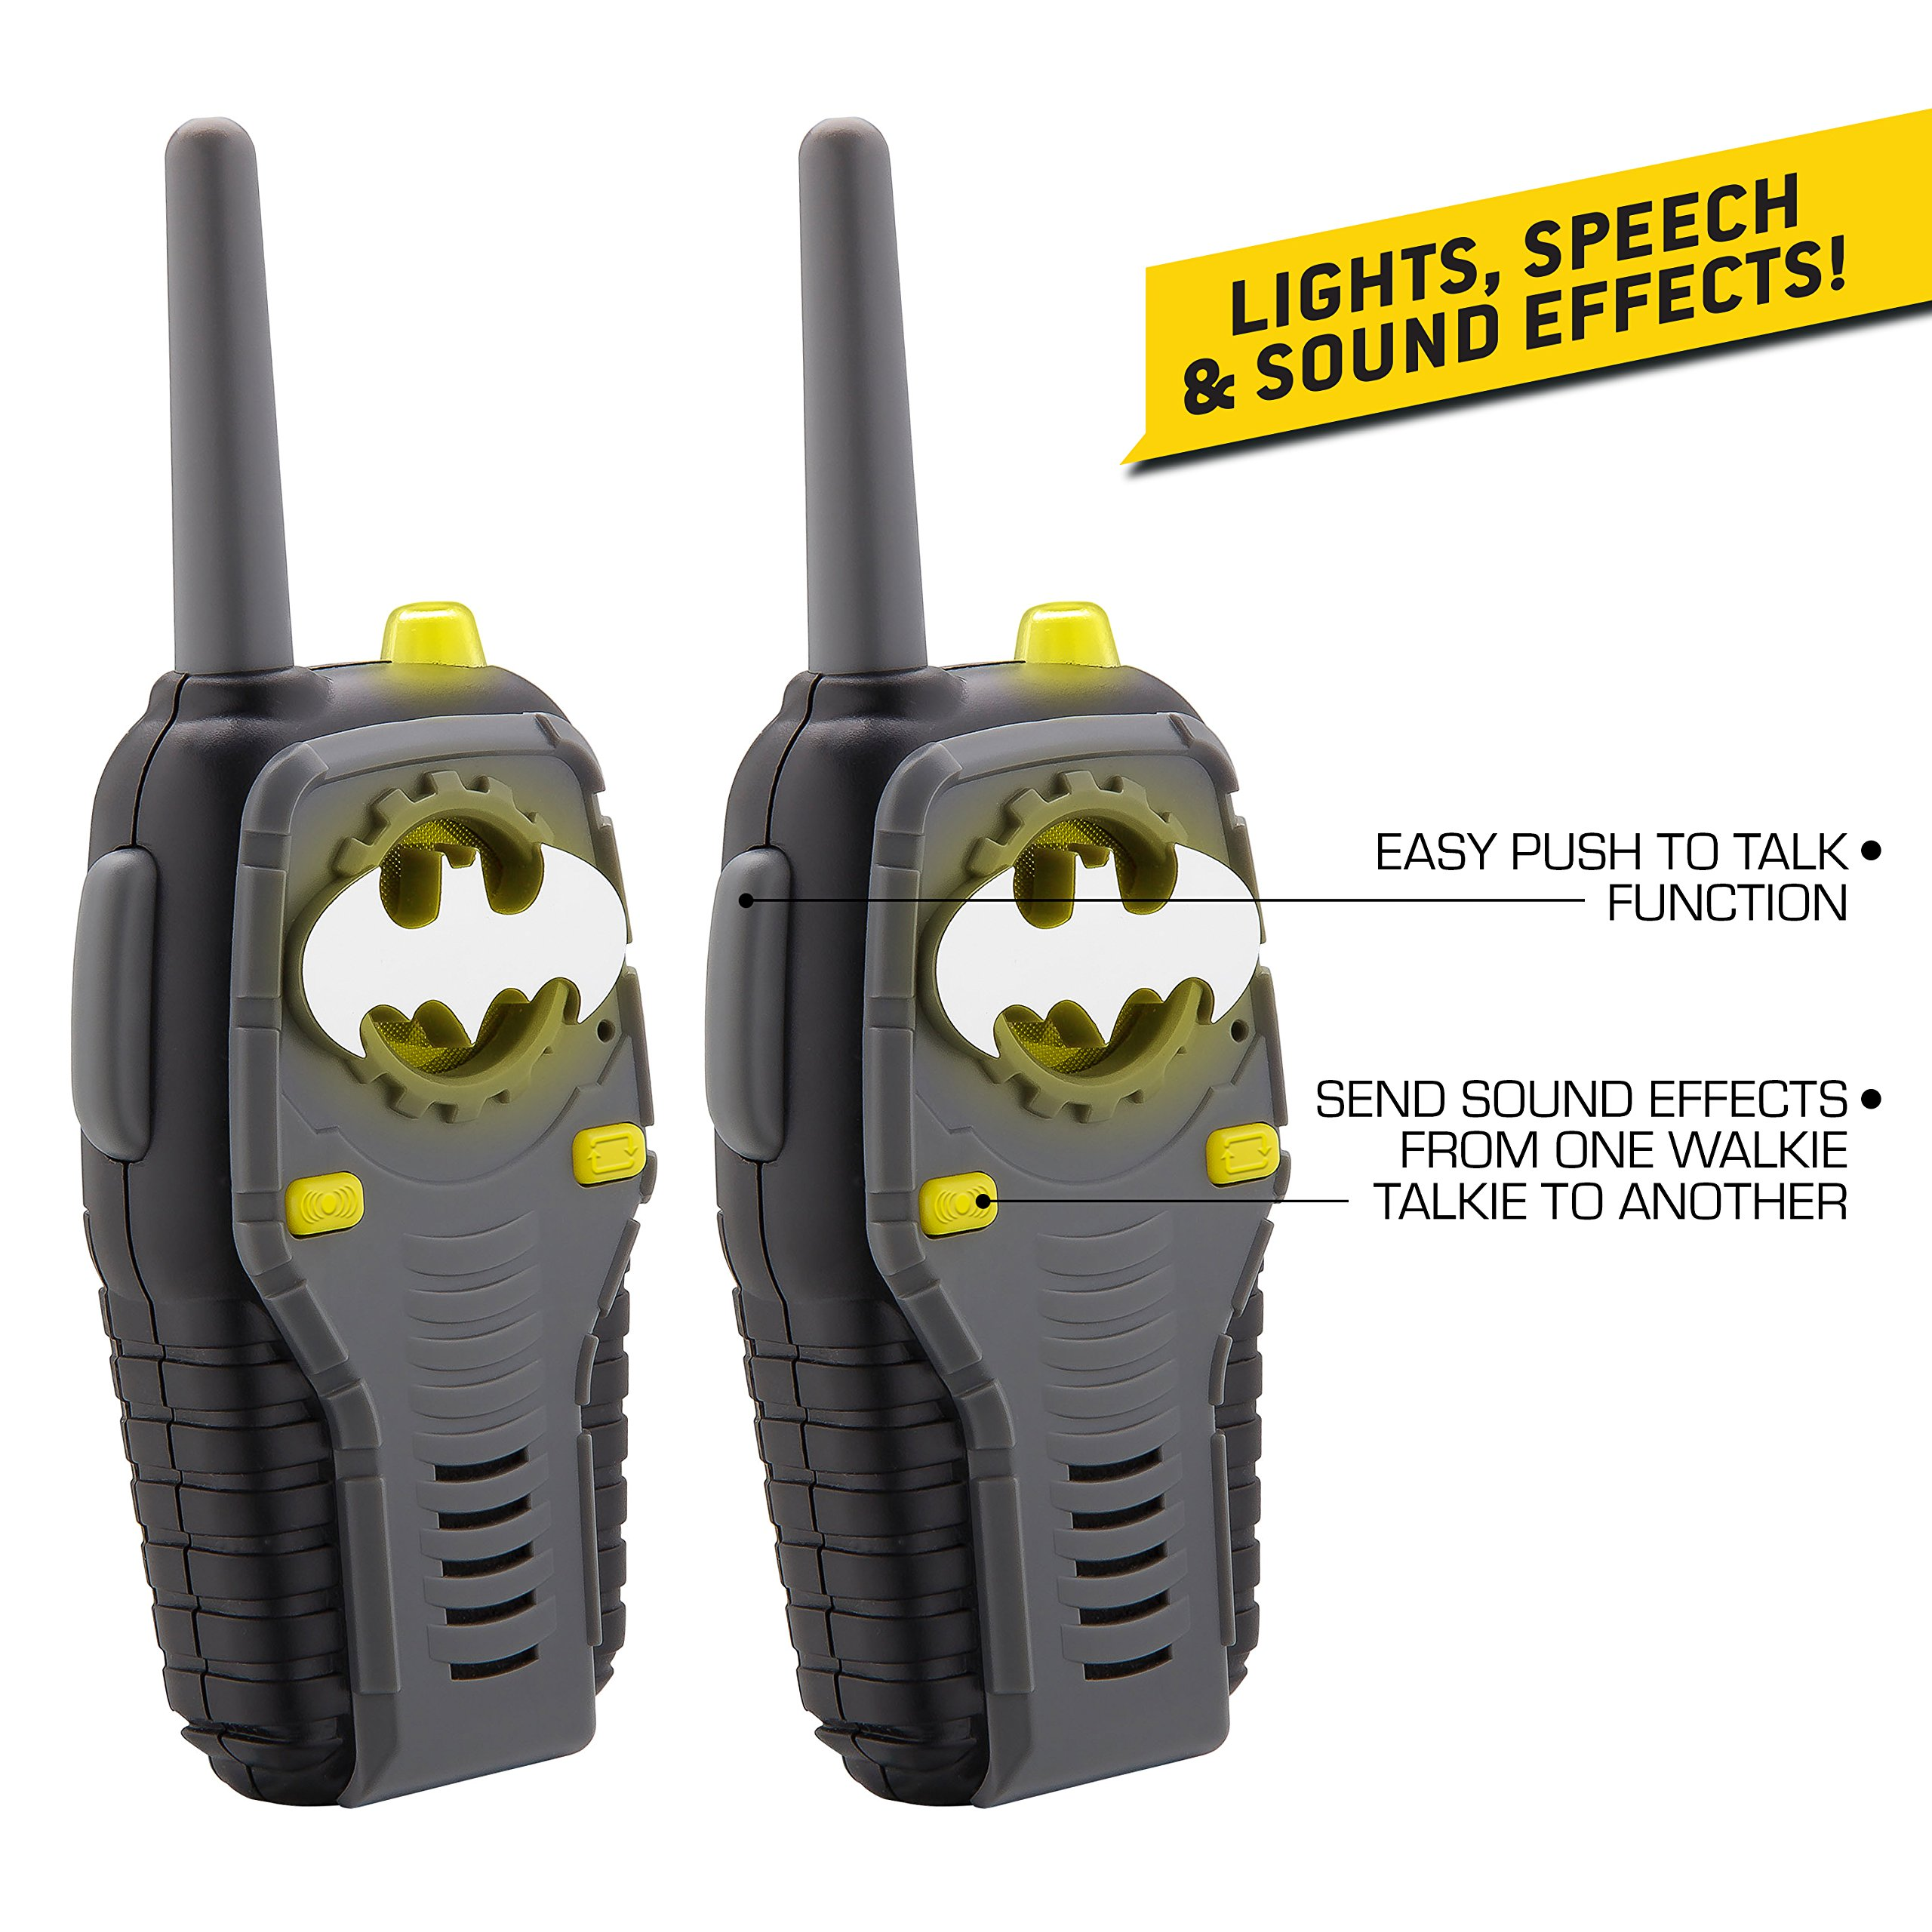 Batman FRS Walkie Talkies for Kids with Lights and Sounds Kid Friendly Easy to Use by eKids (Image #2)